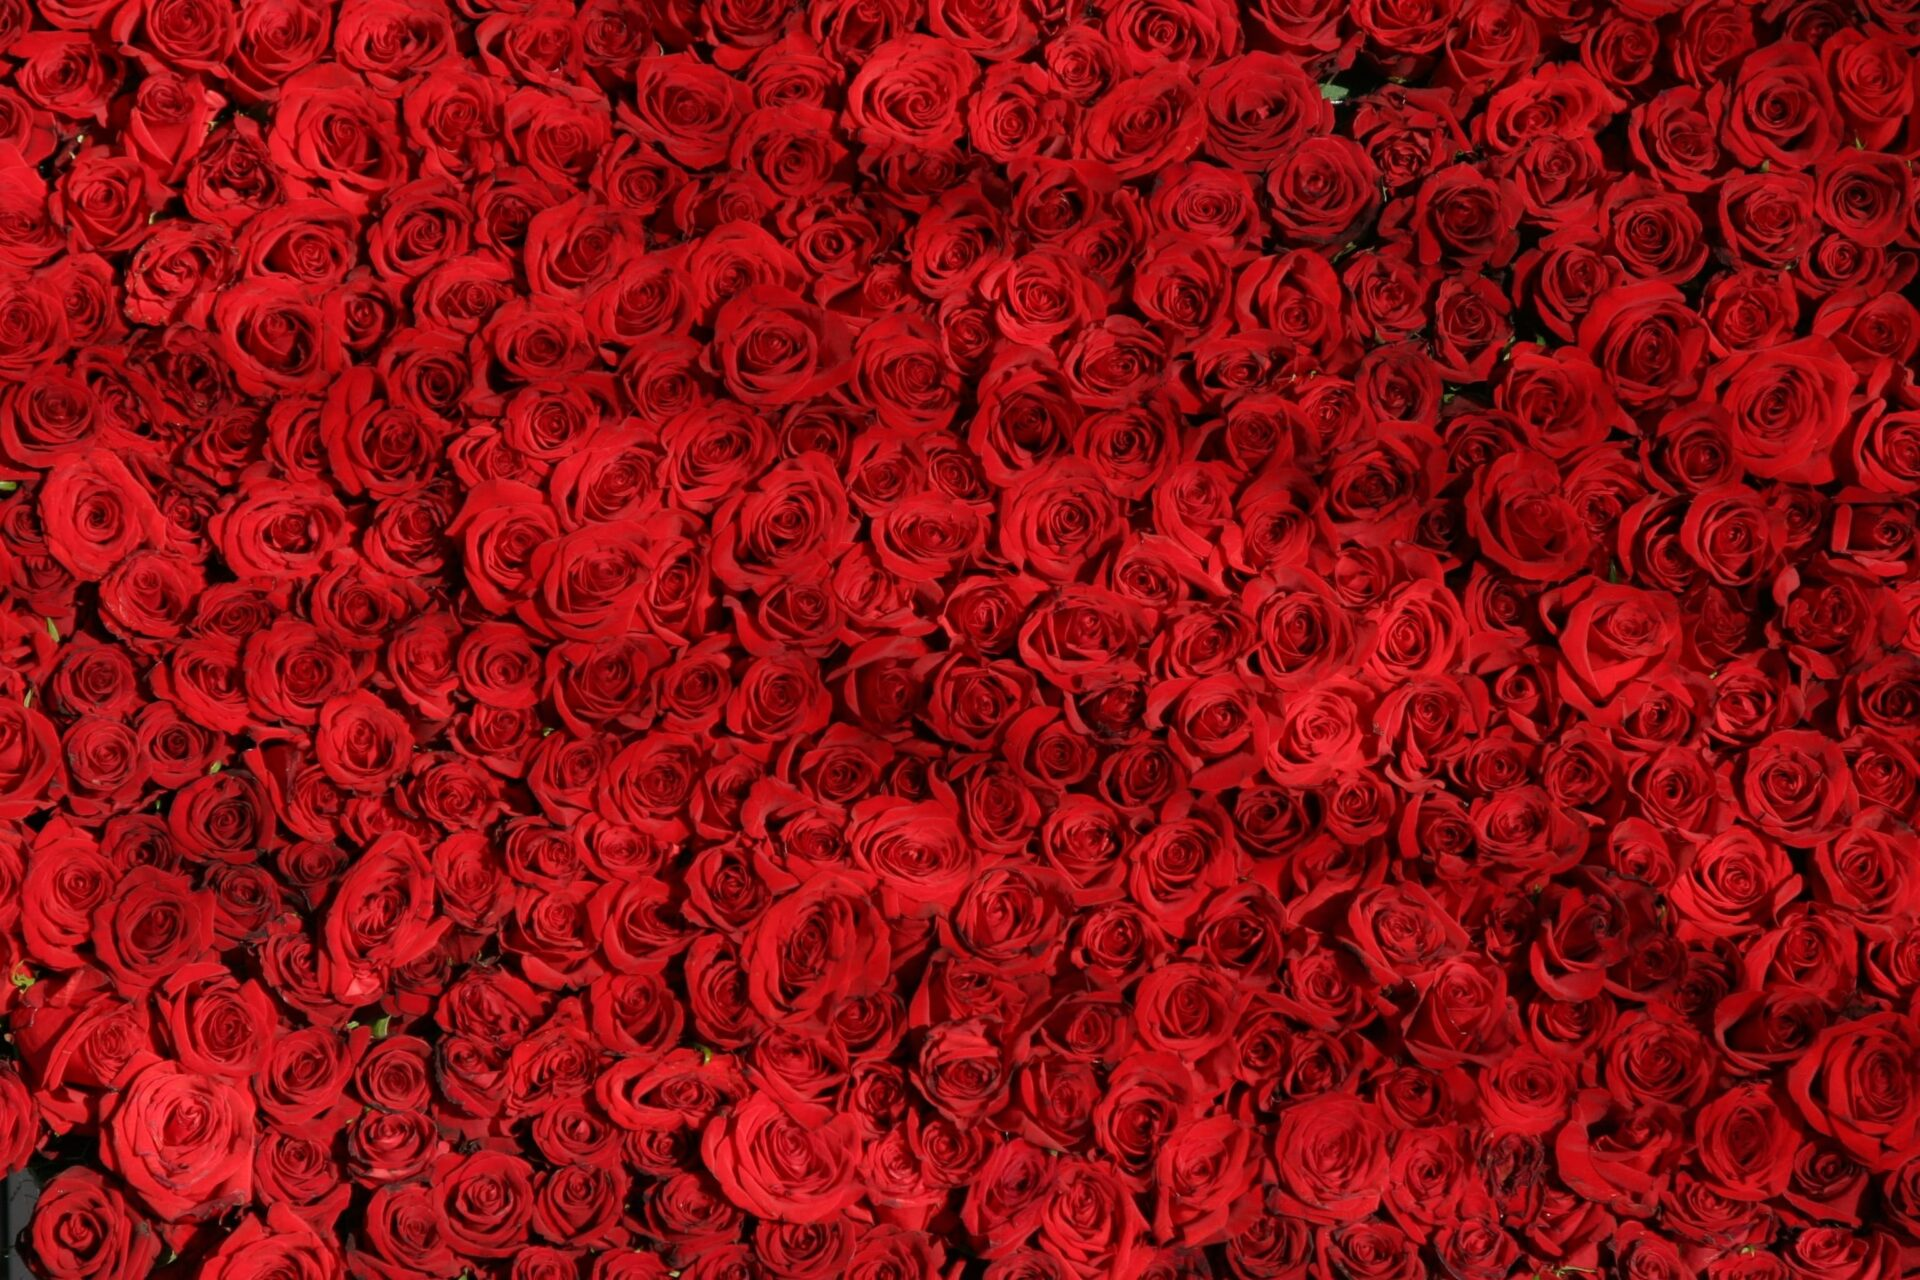 Bed roses